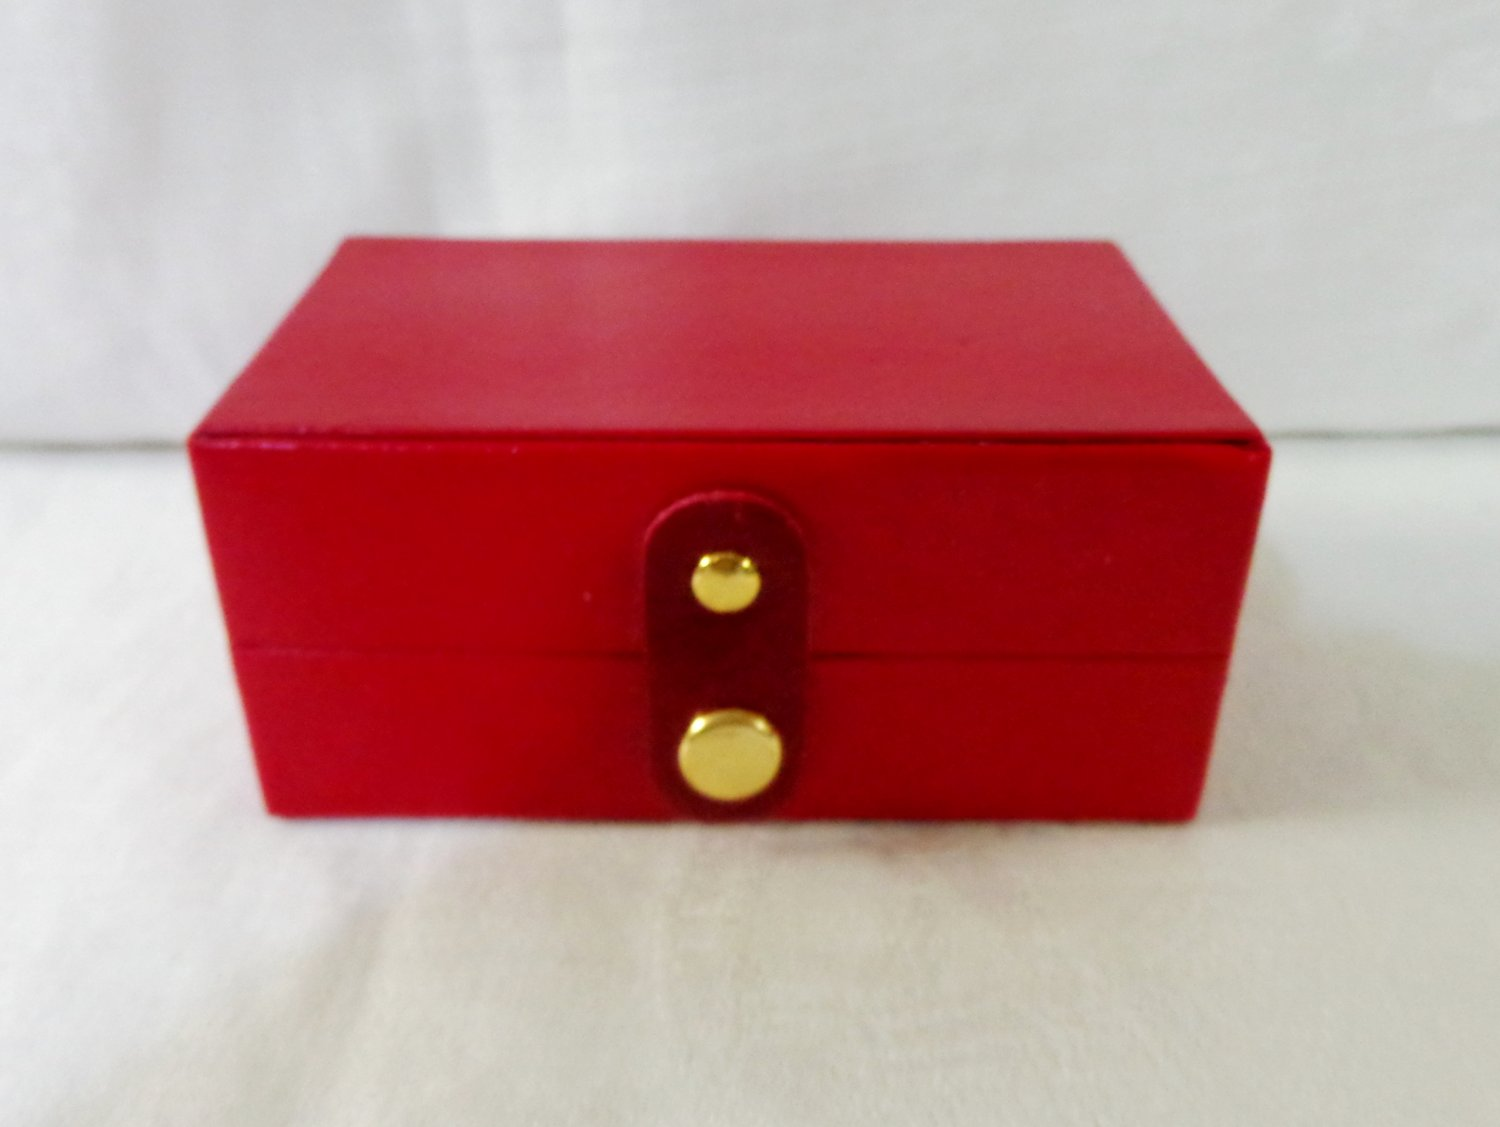 Small travel or purse sized jewelry box red leatherette pre-owned ll3371